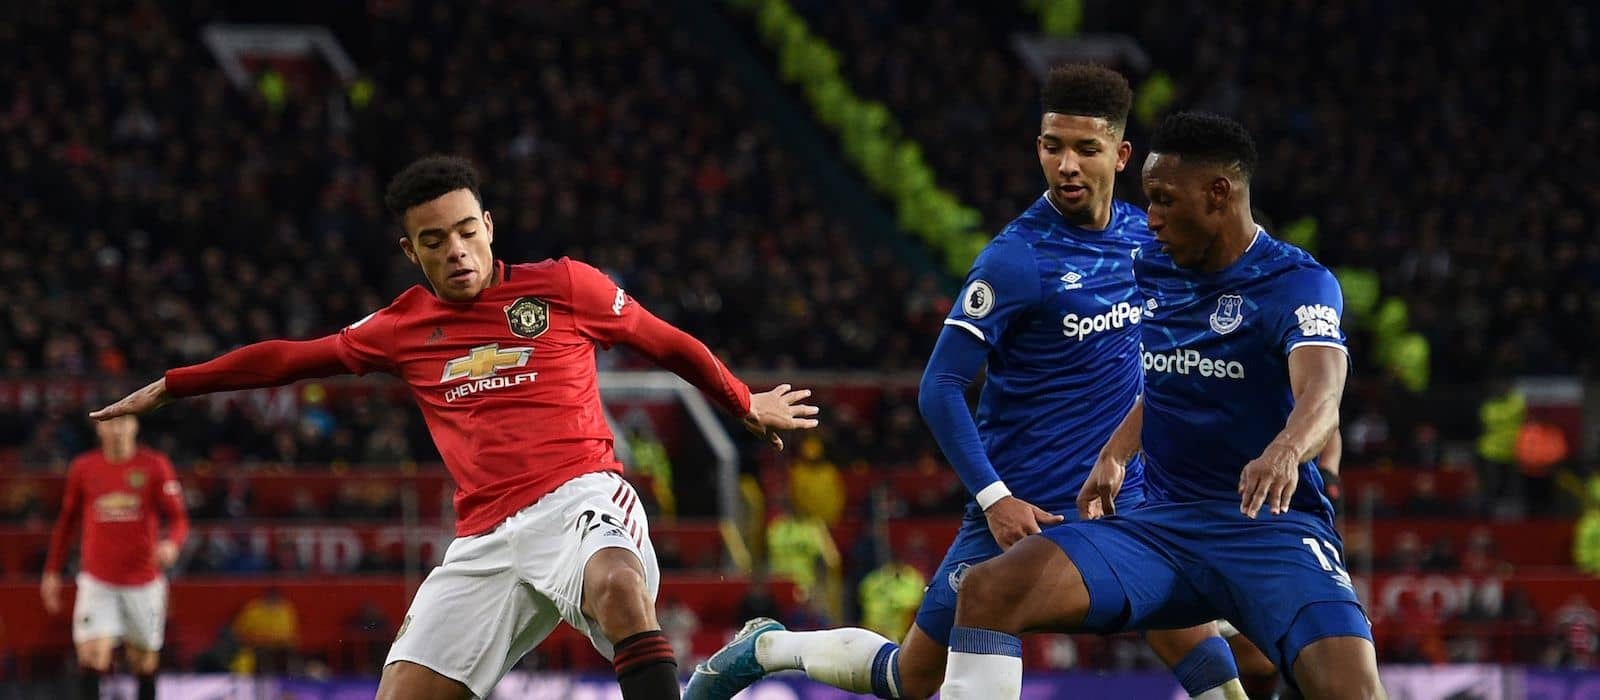 Mason Greenwood impresses Manchester United fans with cameo vs Everton